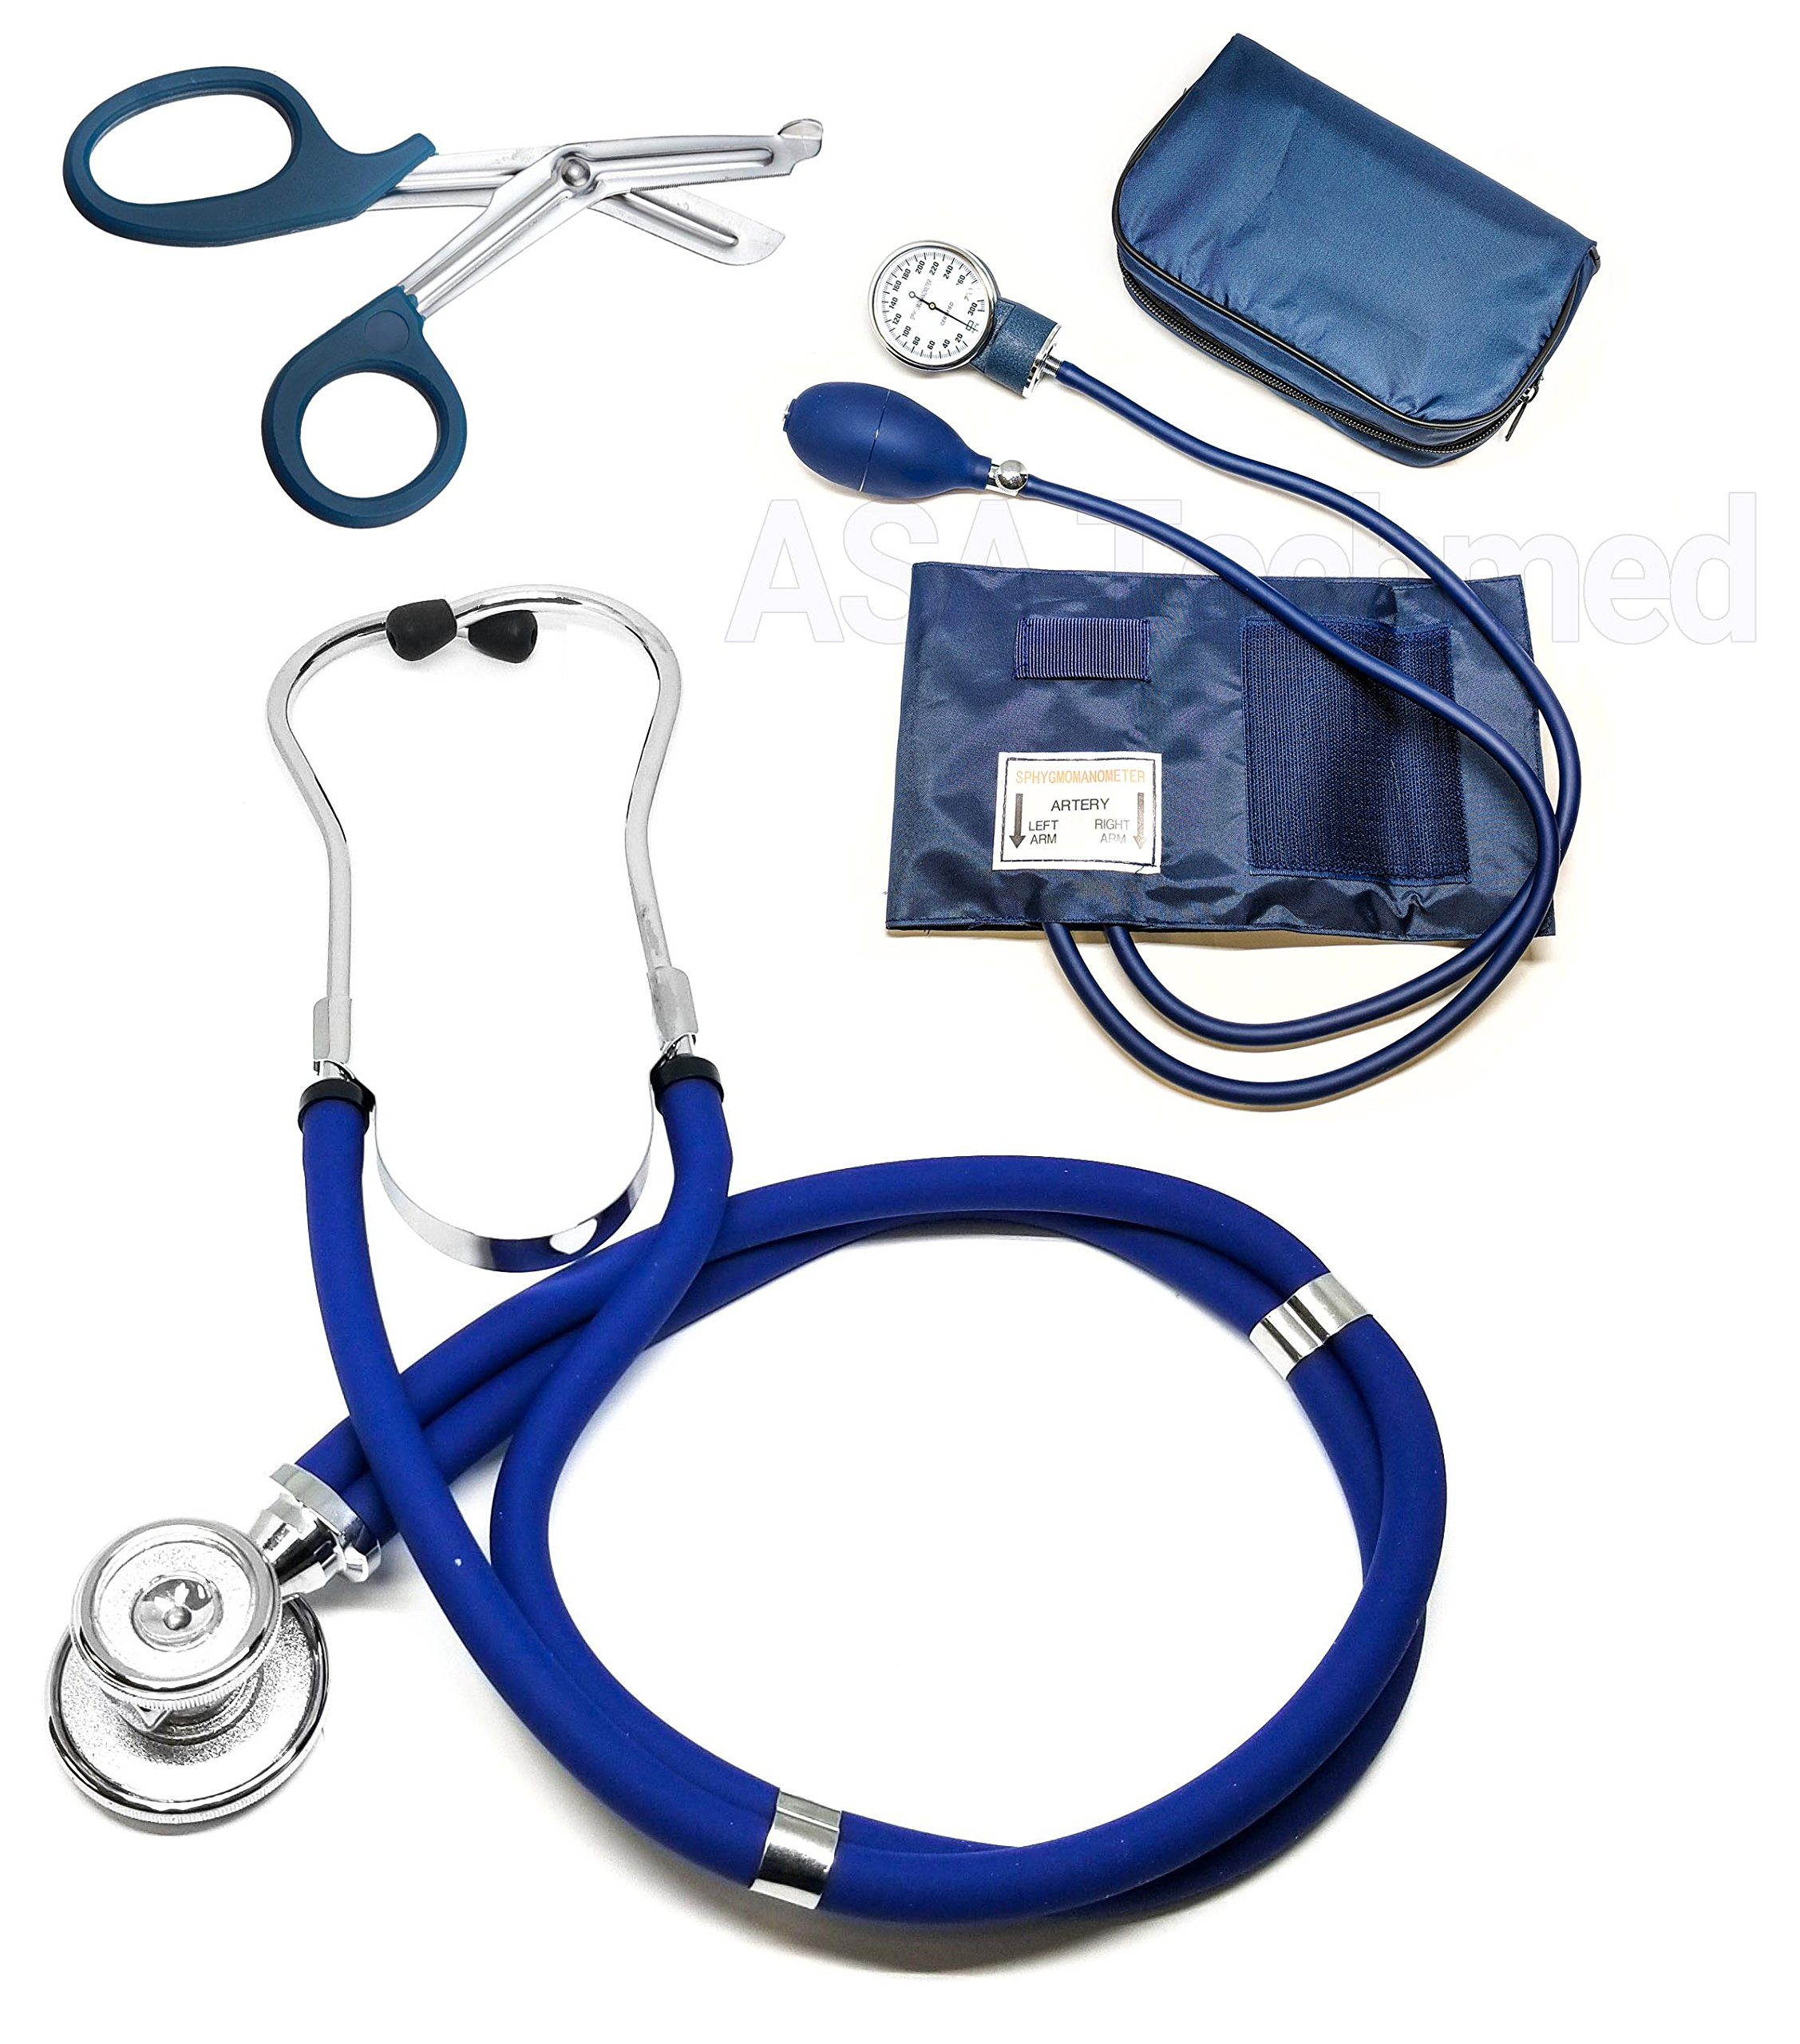 ASATechmed Nurse/EMT Starter Pack Stethoscope, Blood Pressure Monitor and Free Trauma 7.5'' EMT Shear Ideal Gift for Nurse, EMT, Medical Students, Firefighter, Police and Personal Use (Navy Blue)